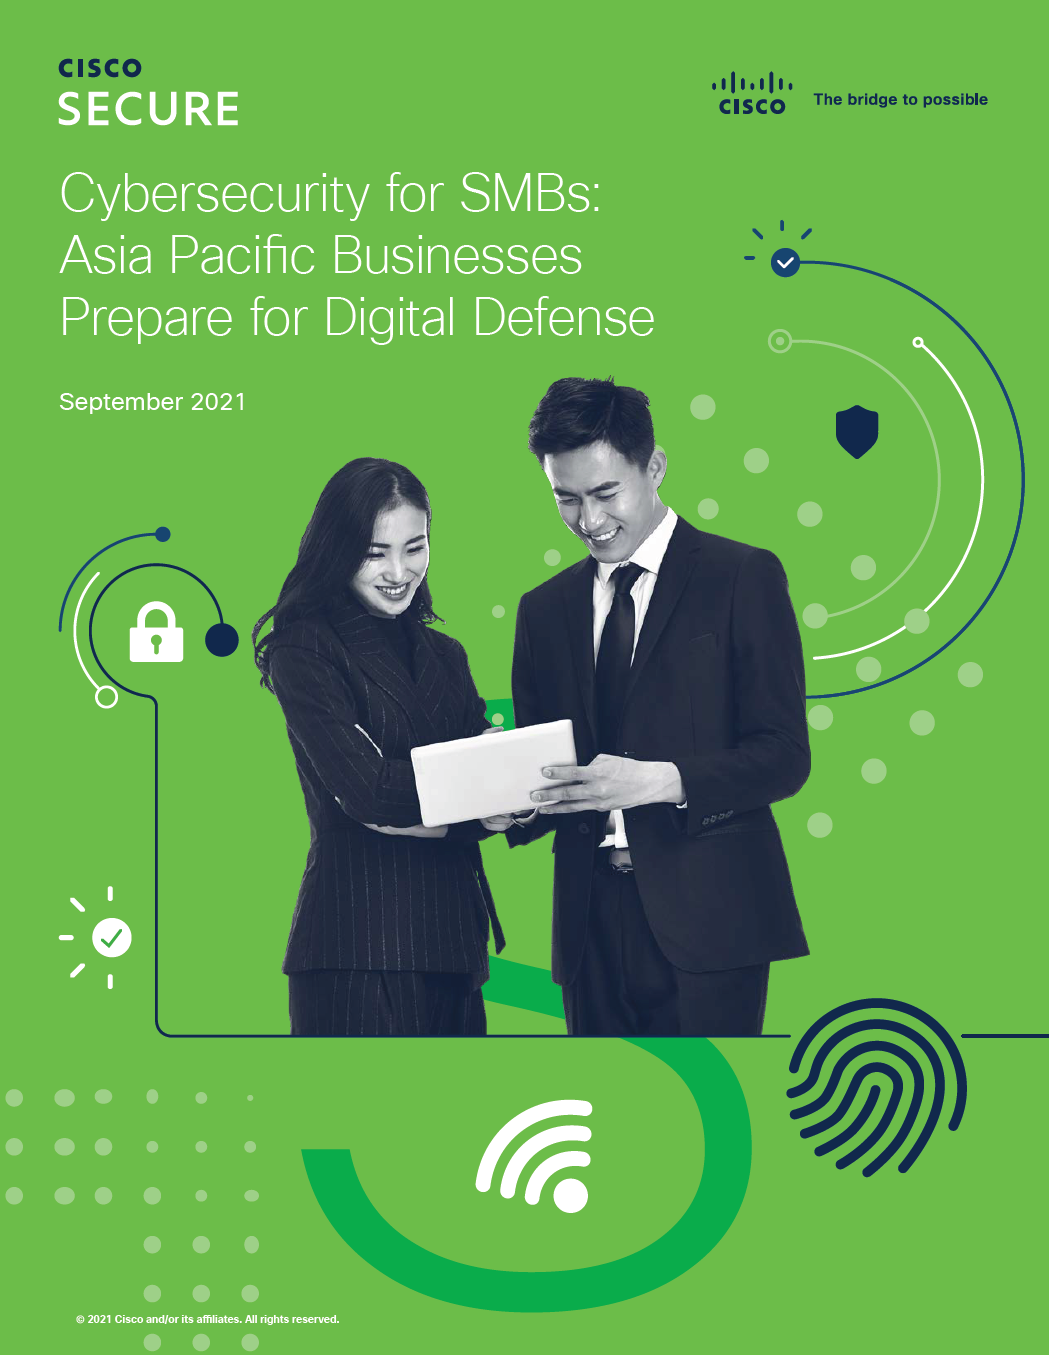 Cisco cybersecurity for SMBs